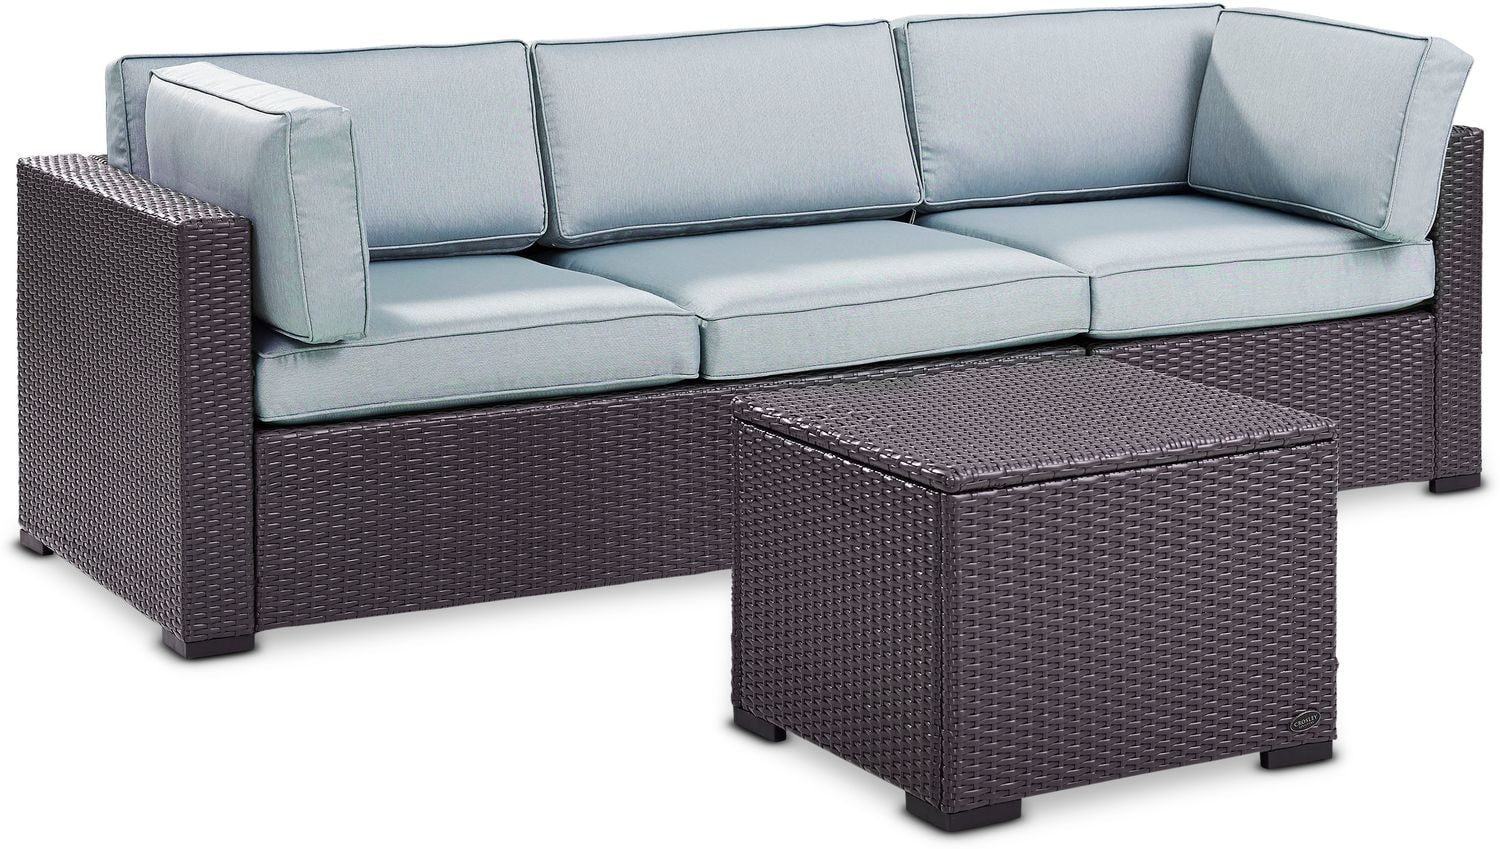 Outdoor Furniture - Isla 2-Piece Outdoor Sofa and Coffee Table Set - Mist